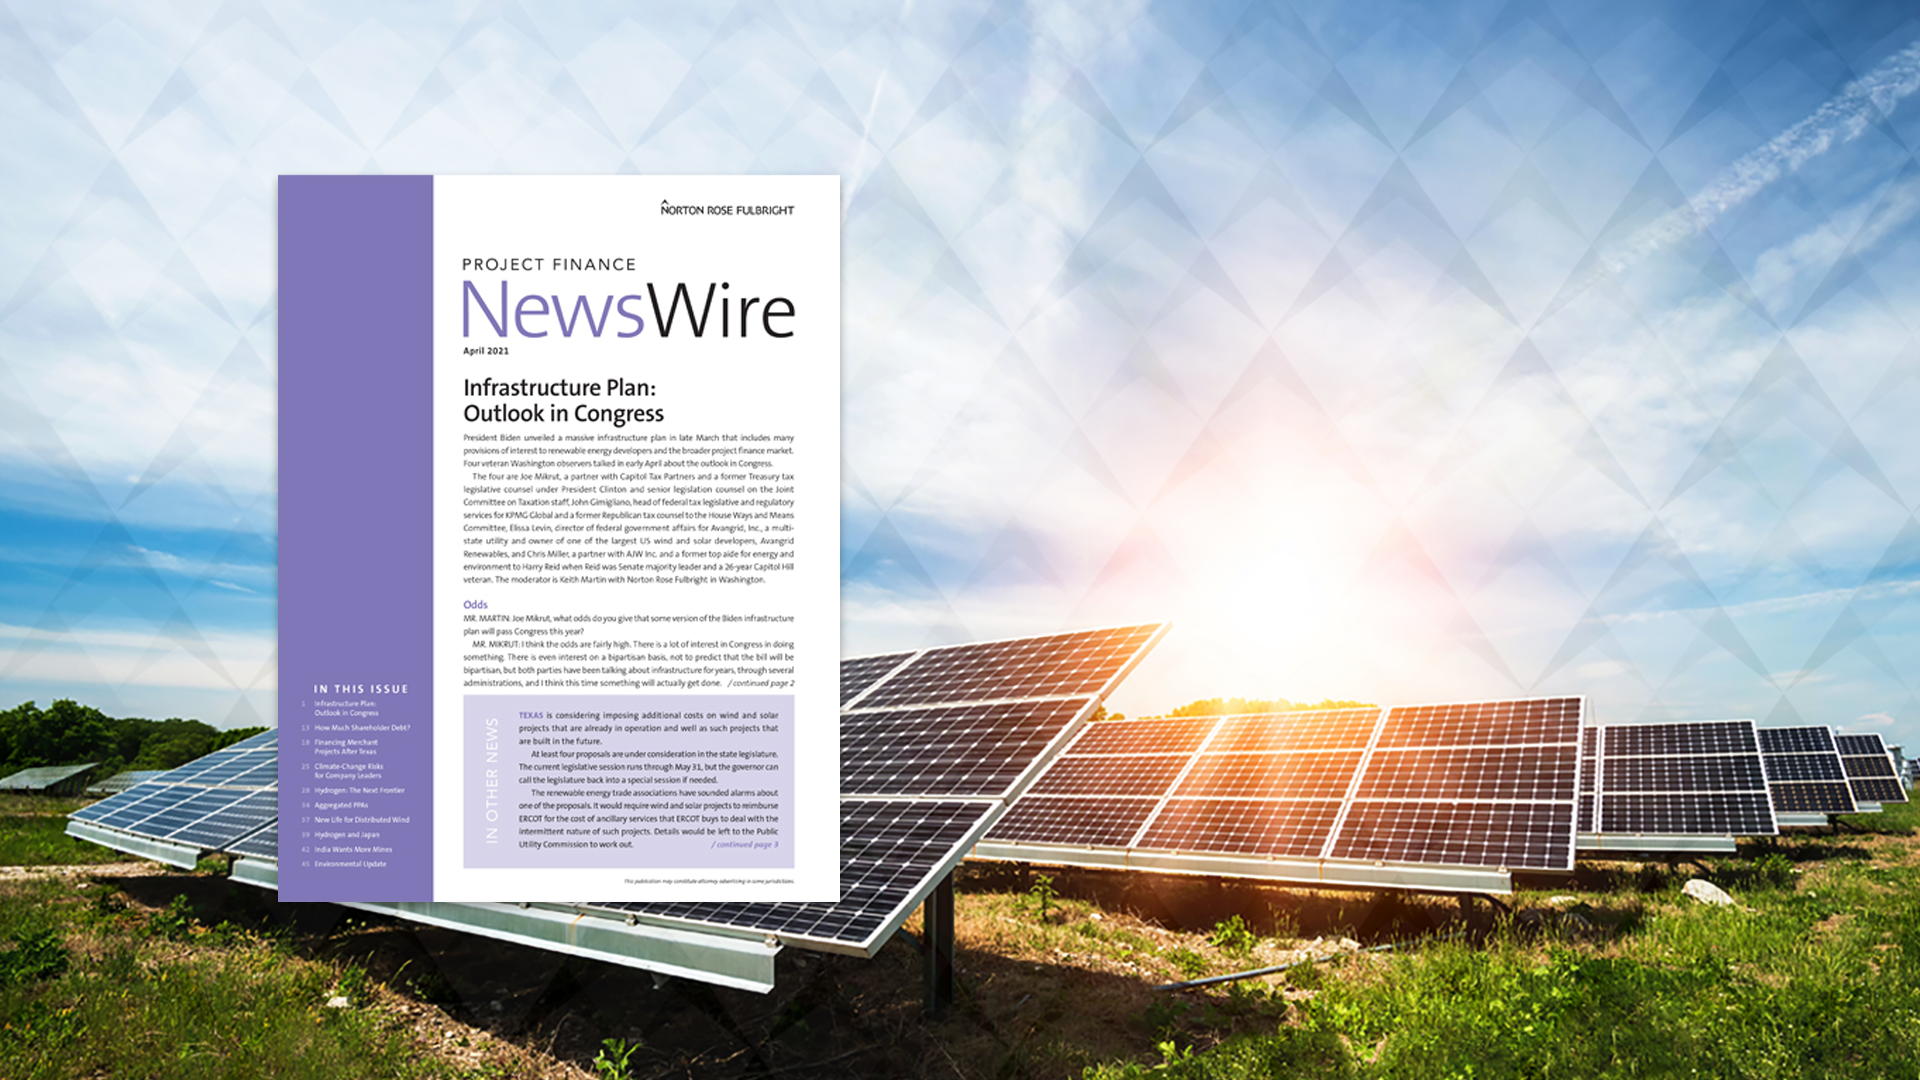 Project Finance NewsWire PDF cover with solar panel farm background